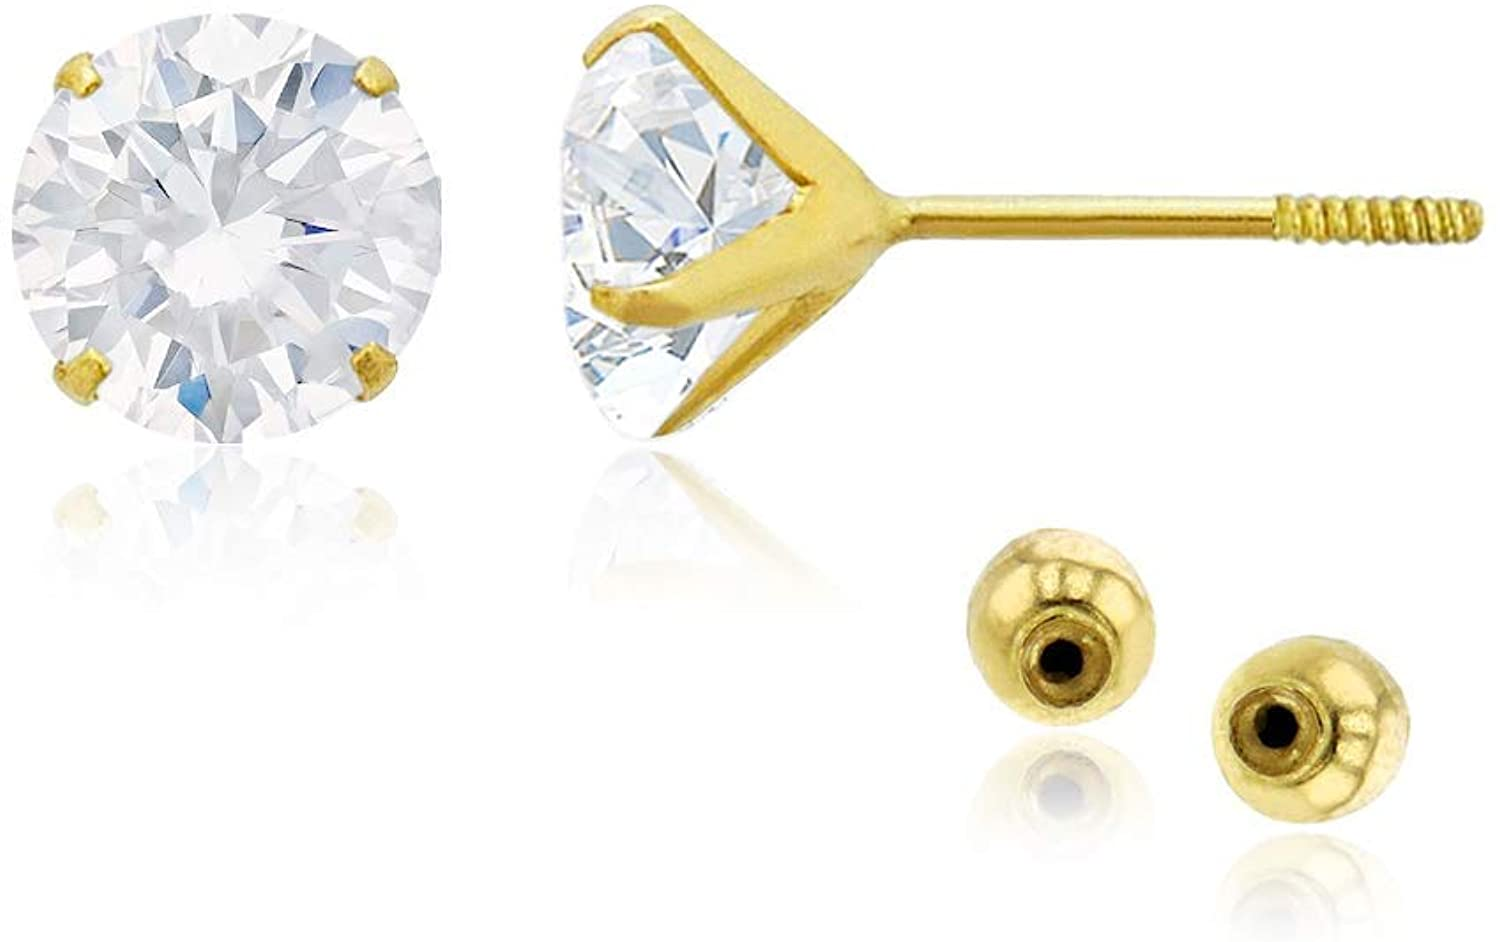 Solid 14k Yellow Gold Hypoallergenic Round Heart Square CZ Cubic Zirconia Solitaire Stud Earrings For girls With Secure Ball Screw Backs For Women, 3mm-7mm